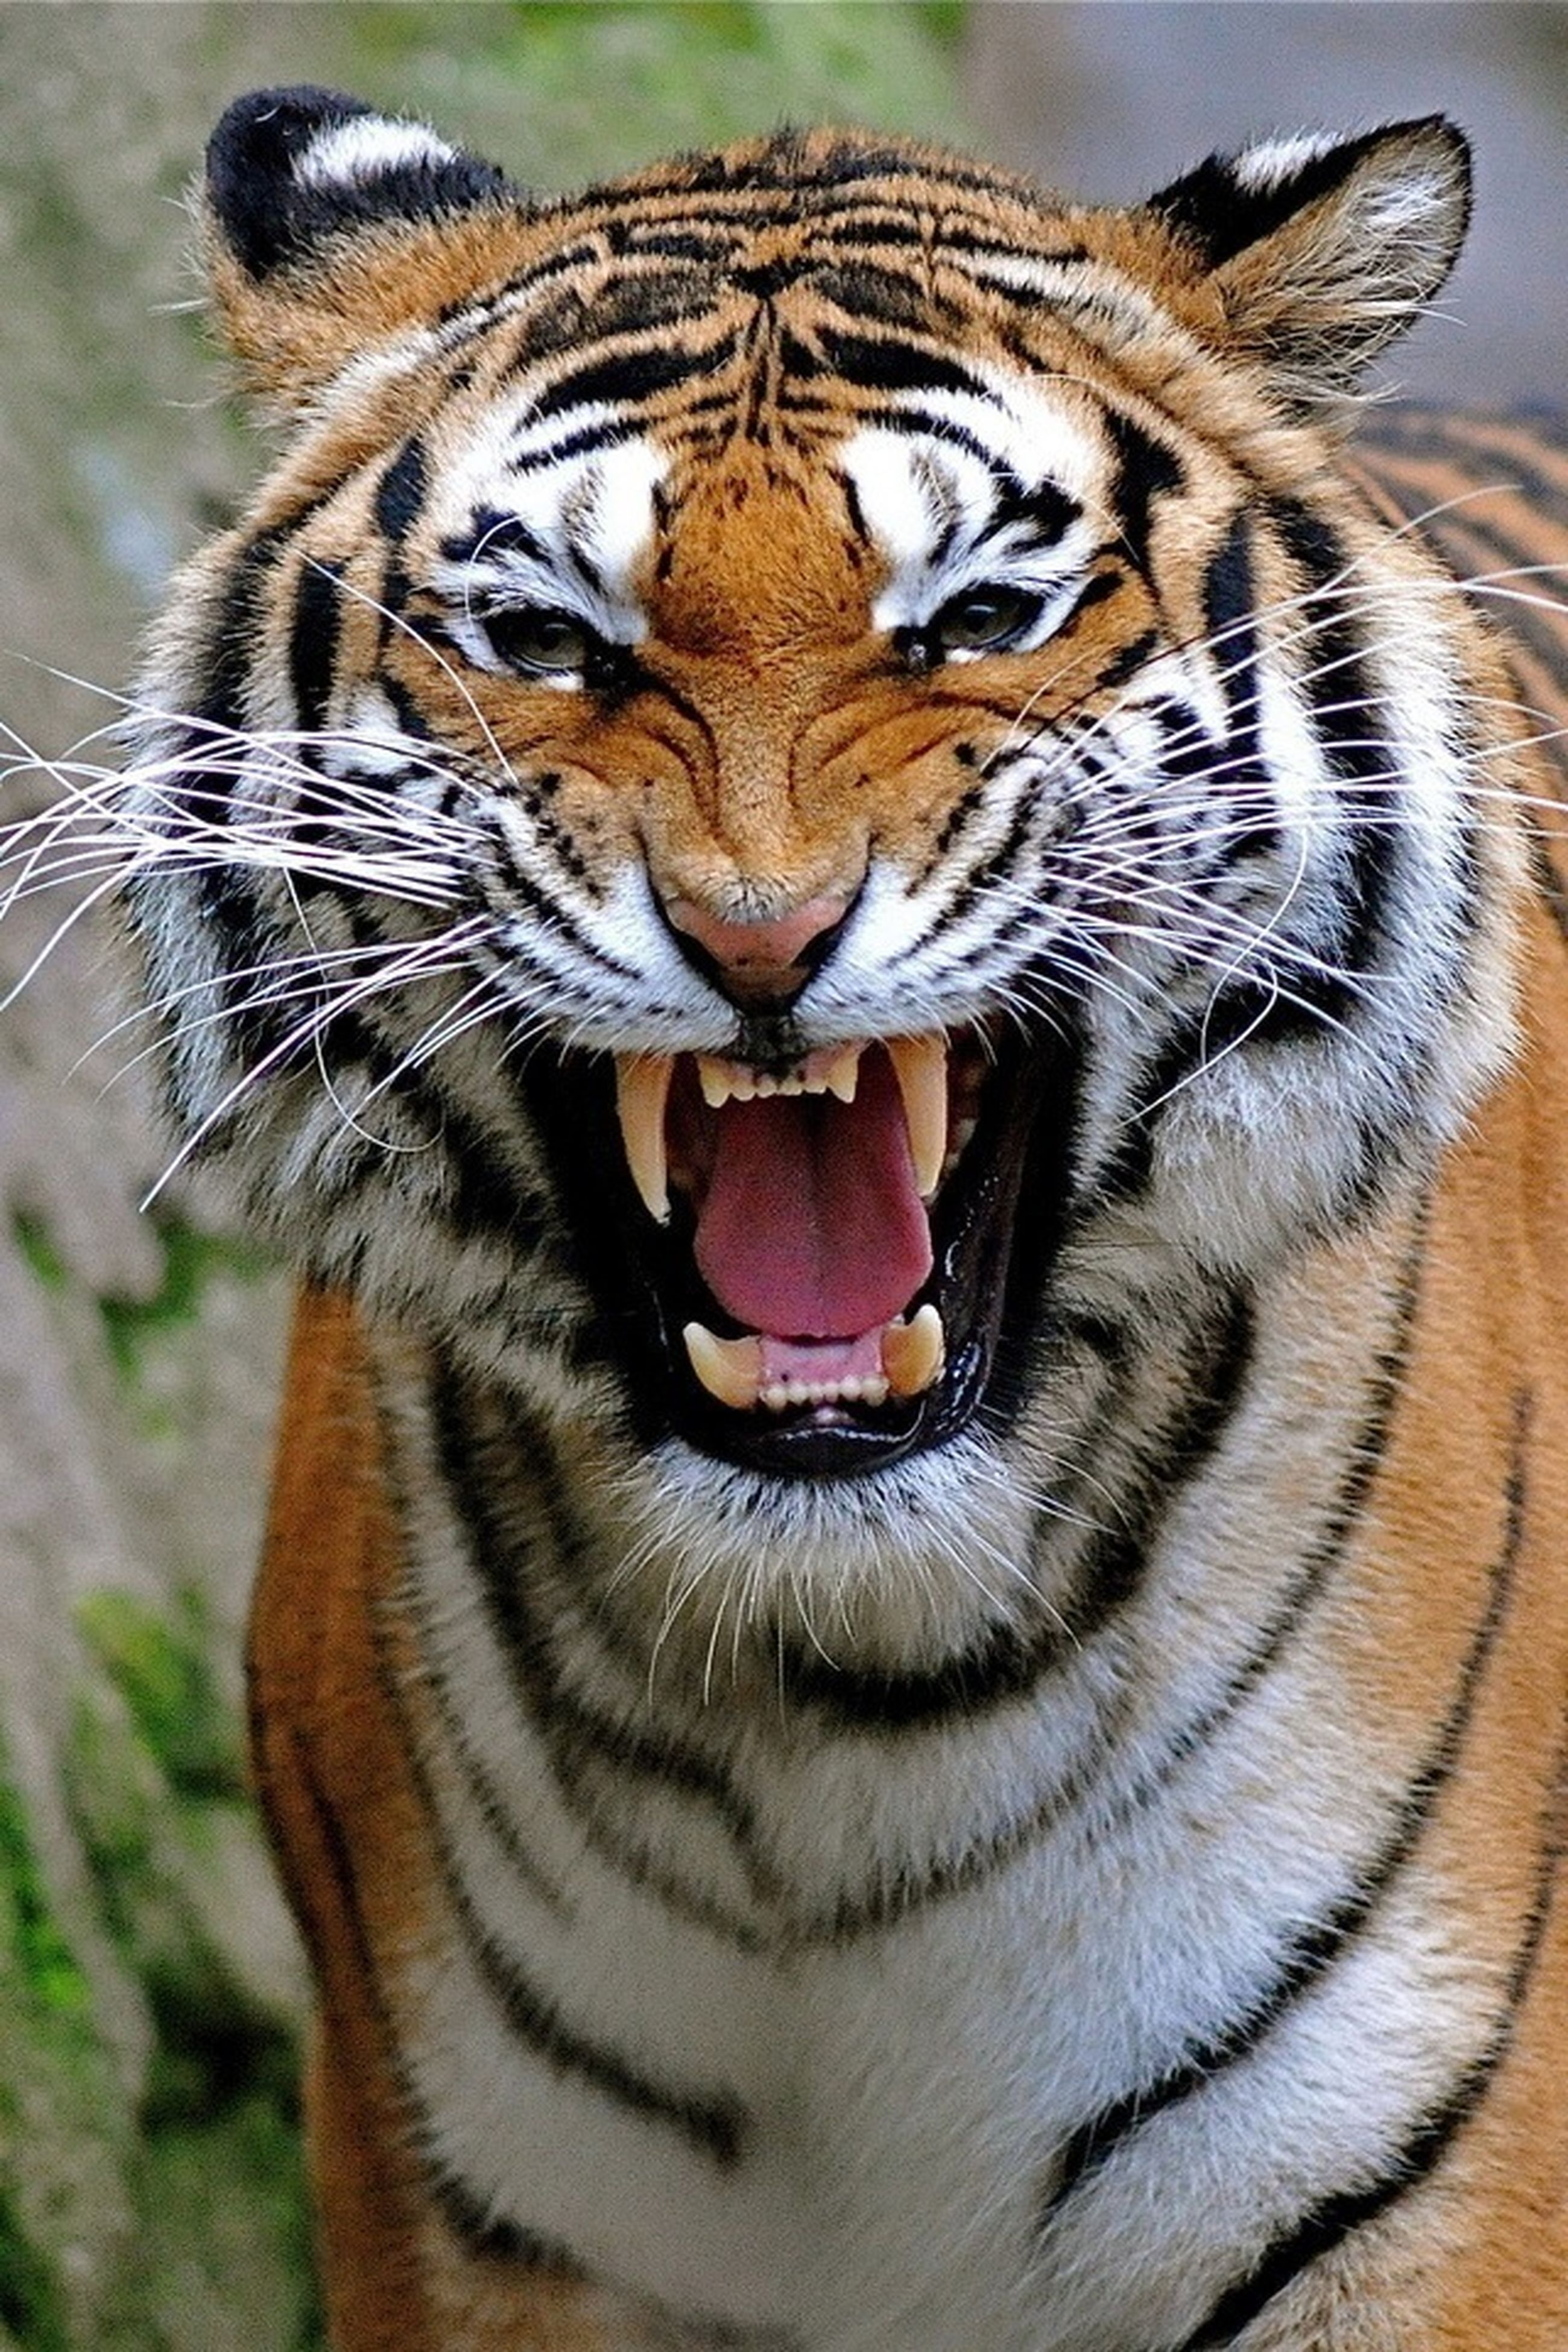 animal themes, one animal, animals in the wild, animal markings, wildlife, close-up, mammal, animal head, focus on foreground, animal body part, natural pattern, tiger, safari animals, zoology, part of, day, nature, outdoors, no people, looking at camera